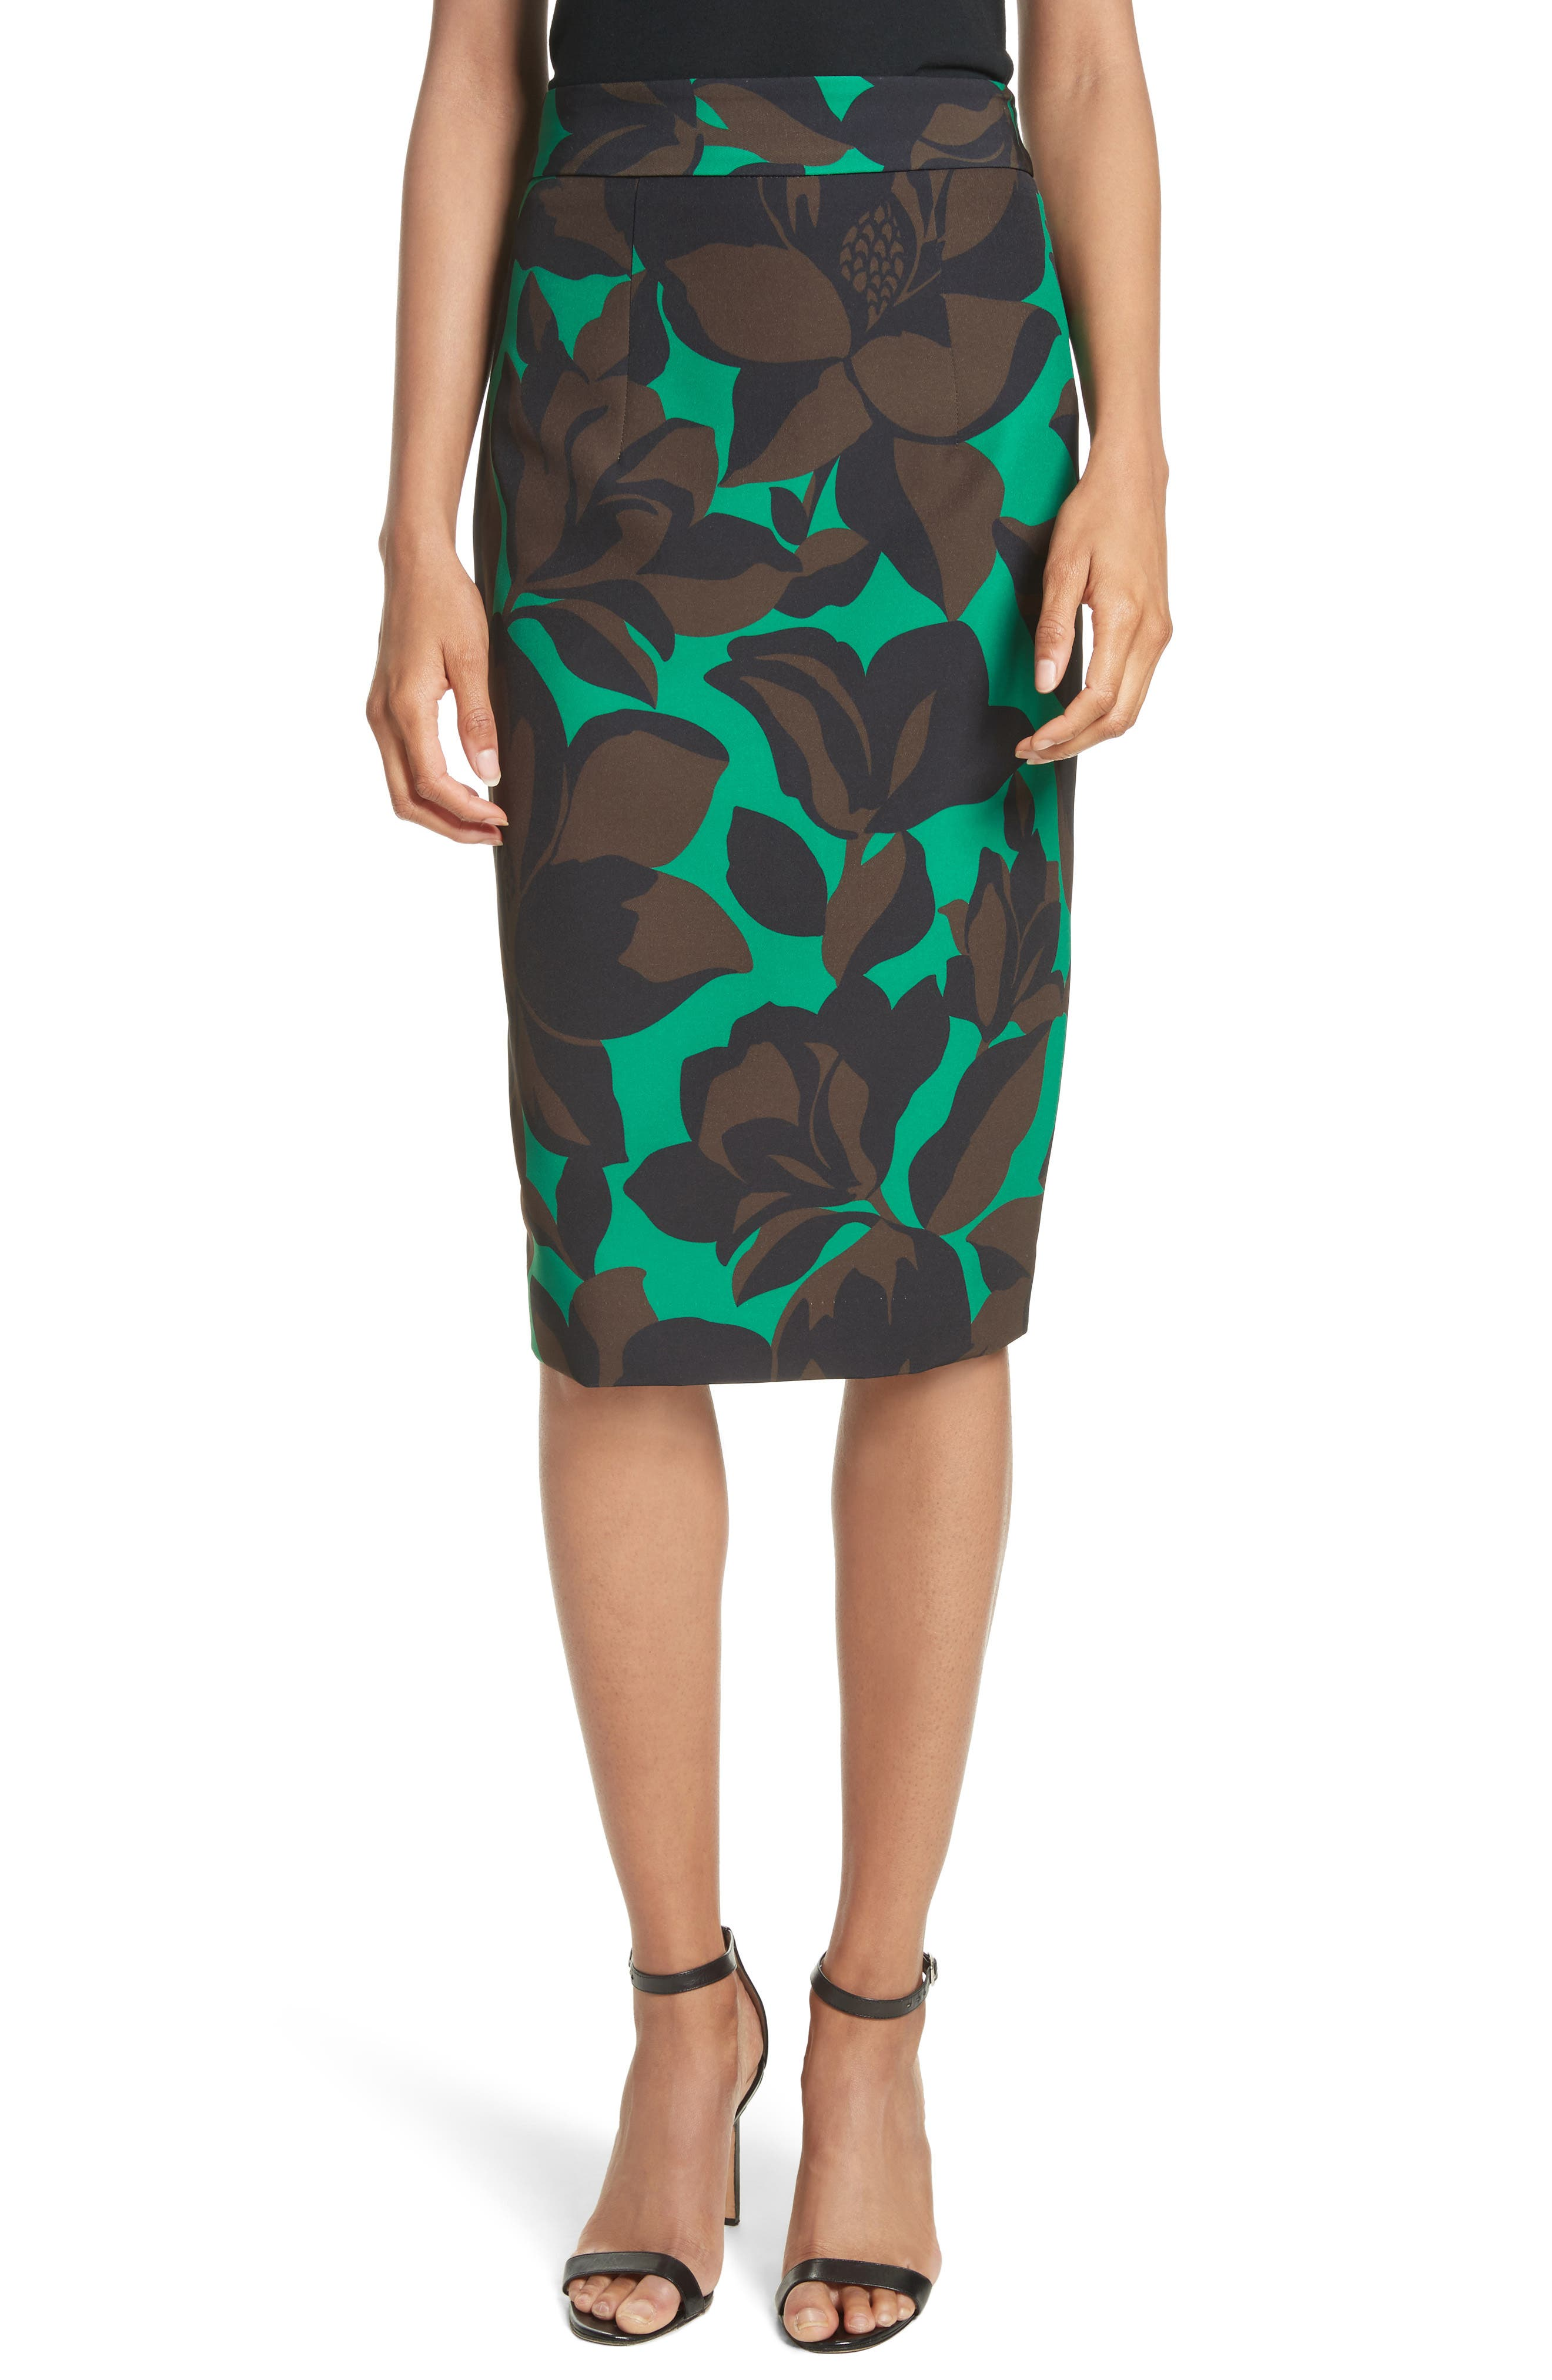 Milly Classic Floral Print Midi Skirt